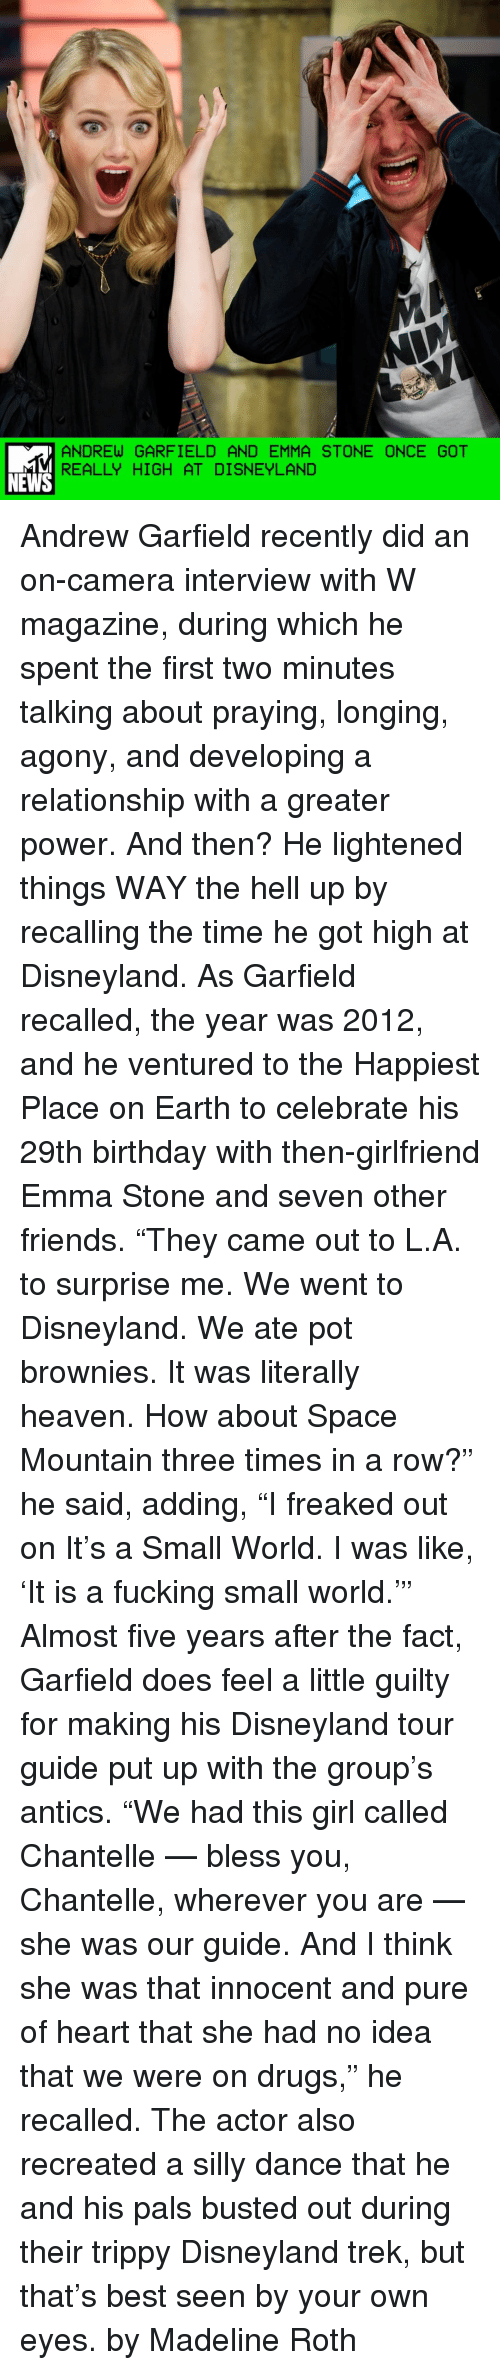 """Antic: ANDREW GARFIELD AND EMMA STONE ONCE GOT  REALLY HIGH AT DISNEYLAND  NEWS Andrew Garfield recently did an on-camera interview with W magazine, during which he spent the first two minutes talking about praying, longing, agony, and developing a relationship with a greater power. And then? He lightened things WAY the hell up by recalling the time he got high at Disneyland. As Garfield recalled, the year was 2012, and he ventured to the Happiest Place on Earth to celebrate his 29th birthday with then-girlfriend Emma Stone and seven other friends. """"They came out to L.A. to surprise me. We went to Disneyland. We ate pot brownies. It was literally heaven. How about Space Mountain three times in a row?"""" he said, adding, """"I freaked out on It's a Small World. I was like, 'It is a fucking small world.'"""" Almost five years after the fact, Garfield does feel a little guilty for making his Disneyland tour guide put up with the group's antics. """"We had this girl called Chantelle — bless you, Chantelle, wherever you are — she was our guide. And I think she was that innocent and pure of heart that she had no idea that we were on drugs,"""" he recalled. The actor also recreated a silly dance that he and his pals busted out during their trippy Disneyland trek, but that's best seen by your own eyes. by Madeline Roth"""